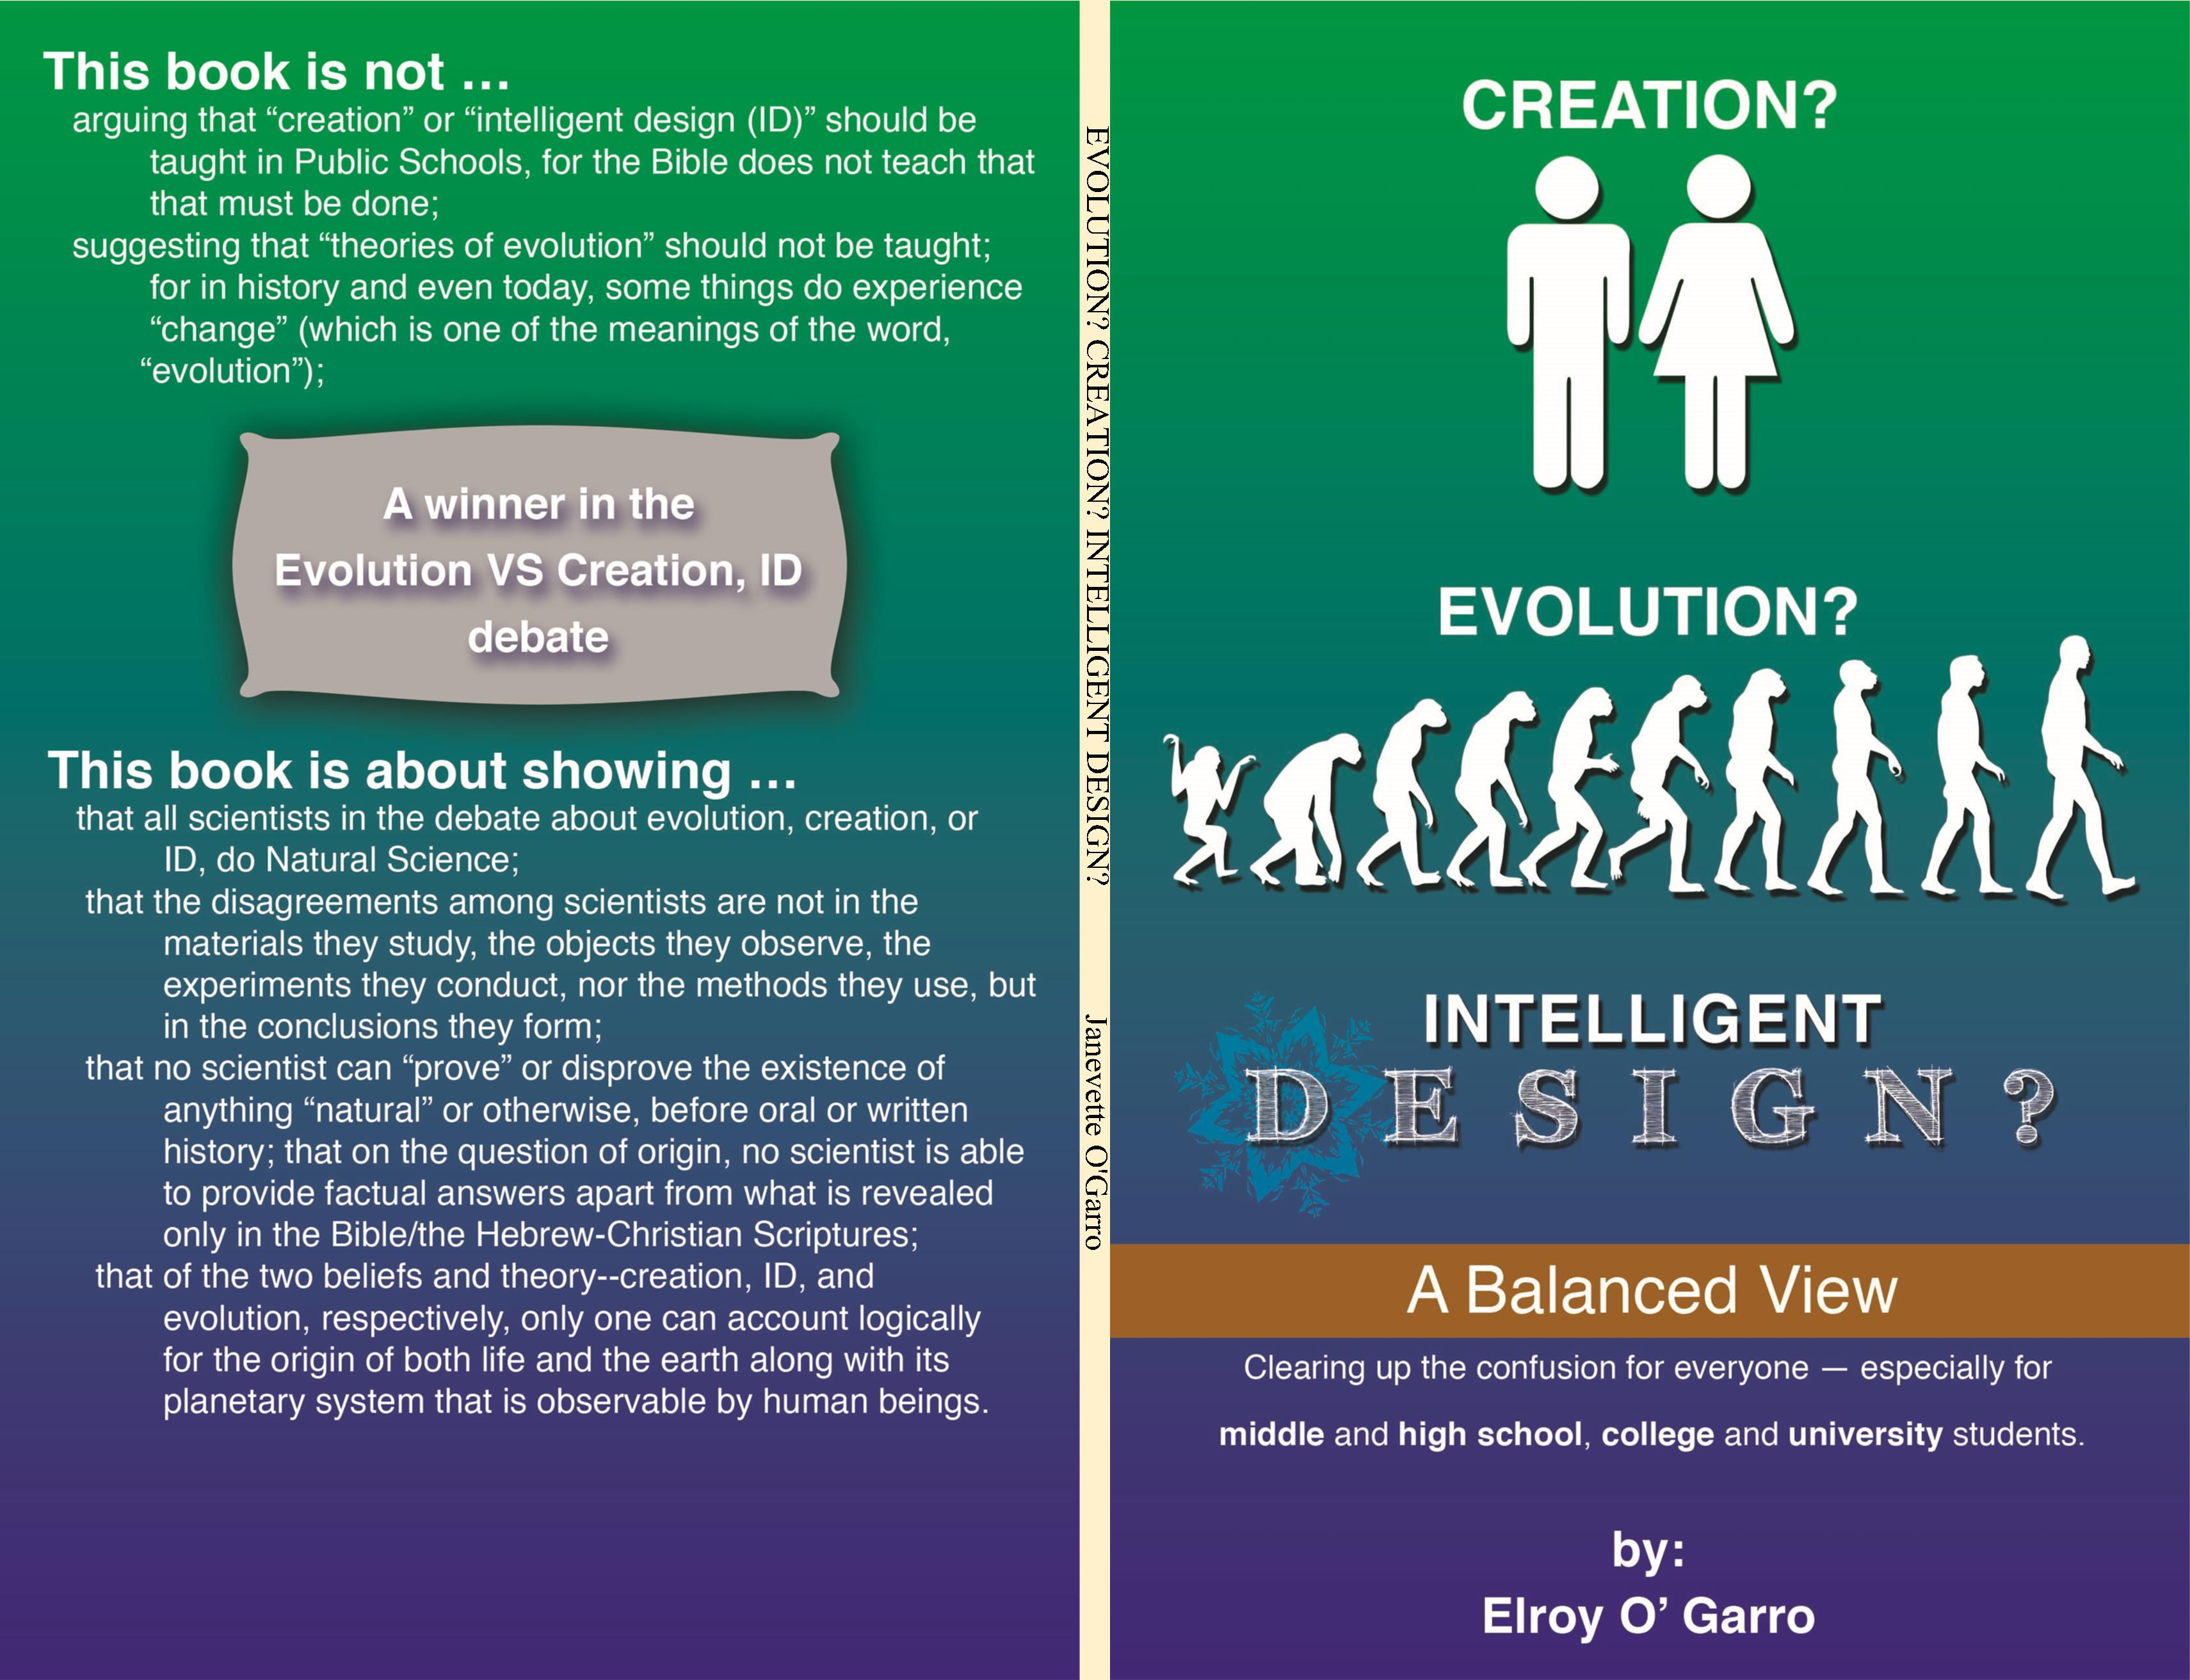 a debate over teaching creationism and evolutionism at schools One onfaith member shared an explanation of 10 things i wish everyone knew about the creation vs evolution debate join onfaith to add your understanding or learn more about thousands of religious texts, images, videos and audio files.